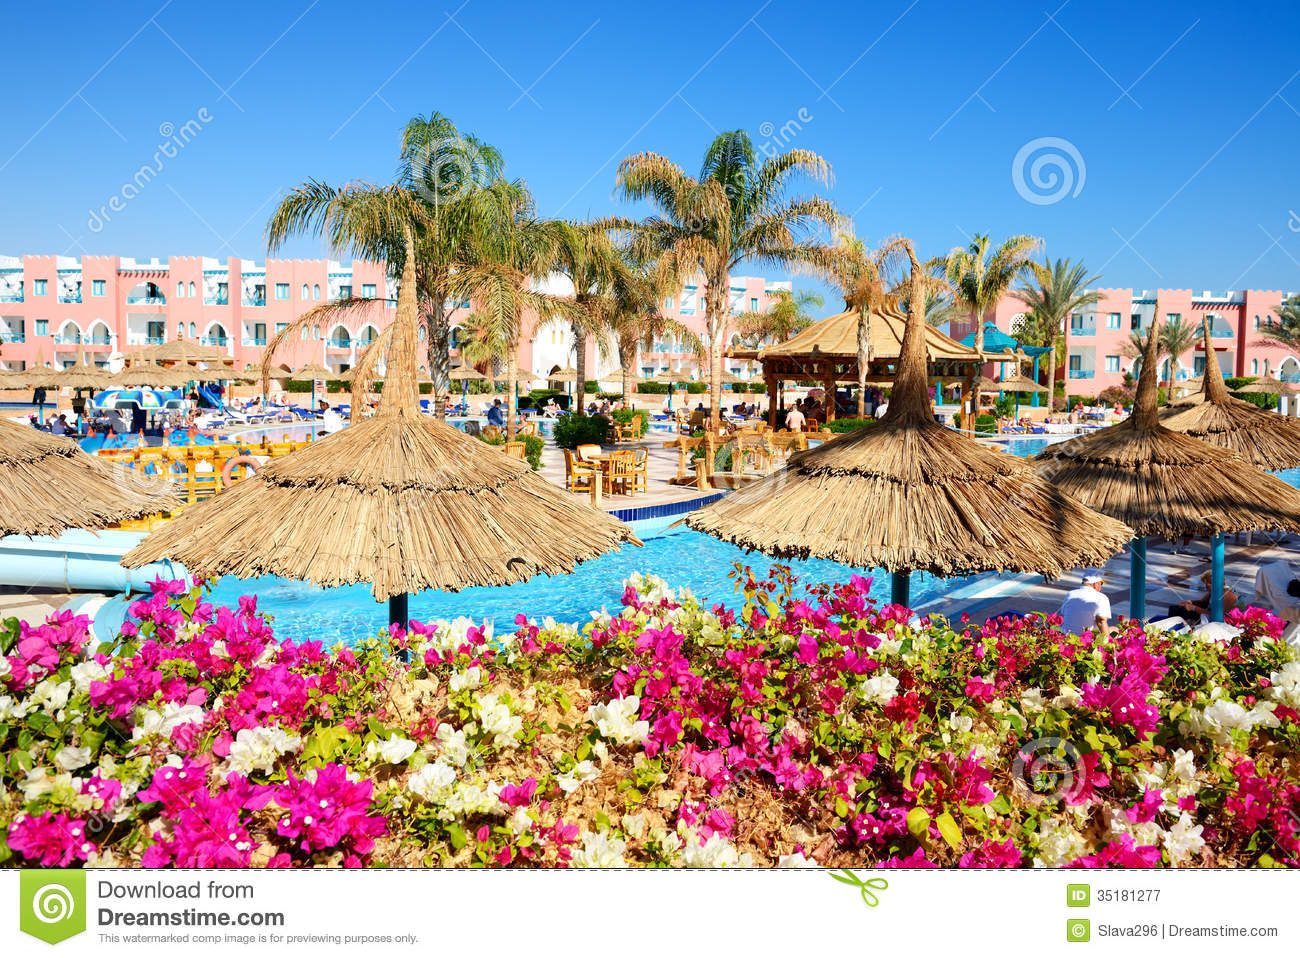 hook up in sharm el sheikh Search for more ideas to find loveyou're better off bringing a lady travel buddy with you the truth of the matter is money affords you the ability to live openly without worry.